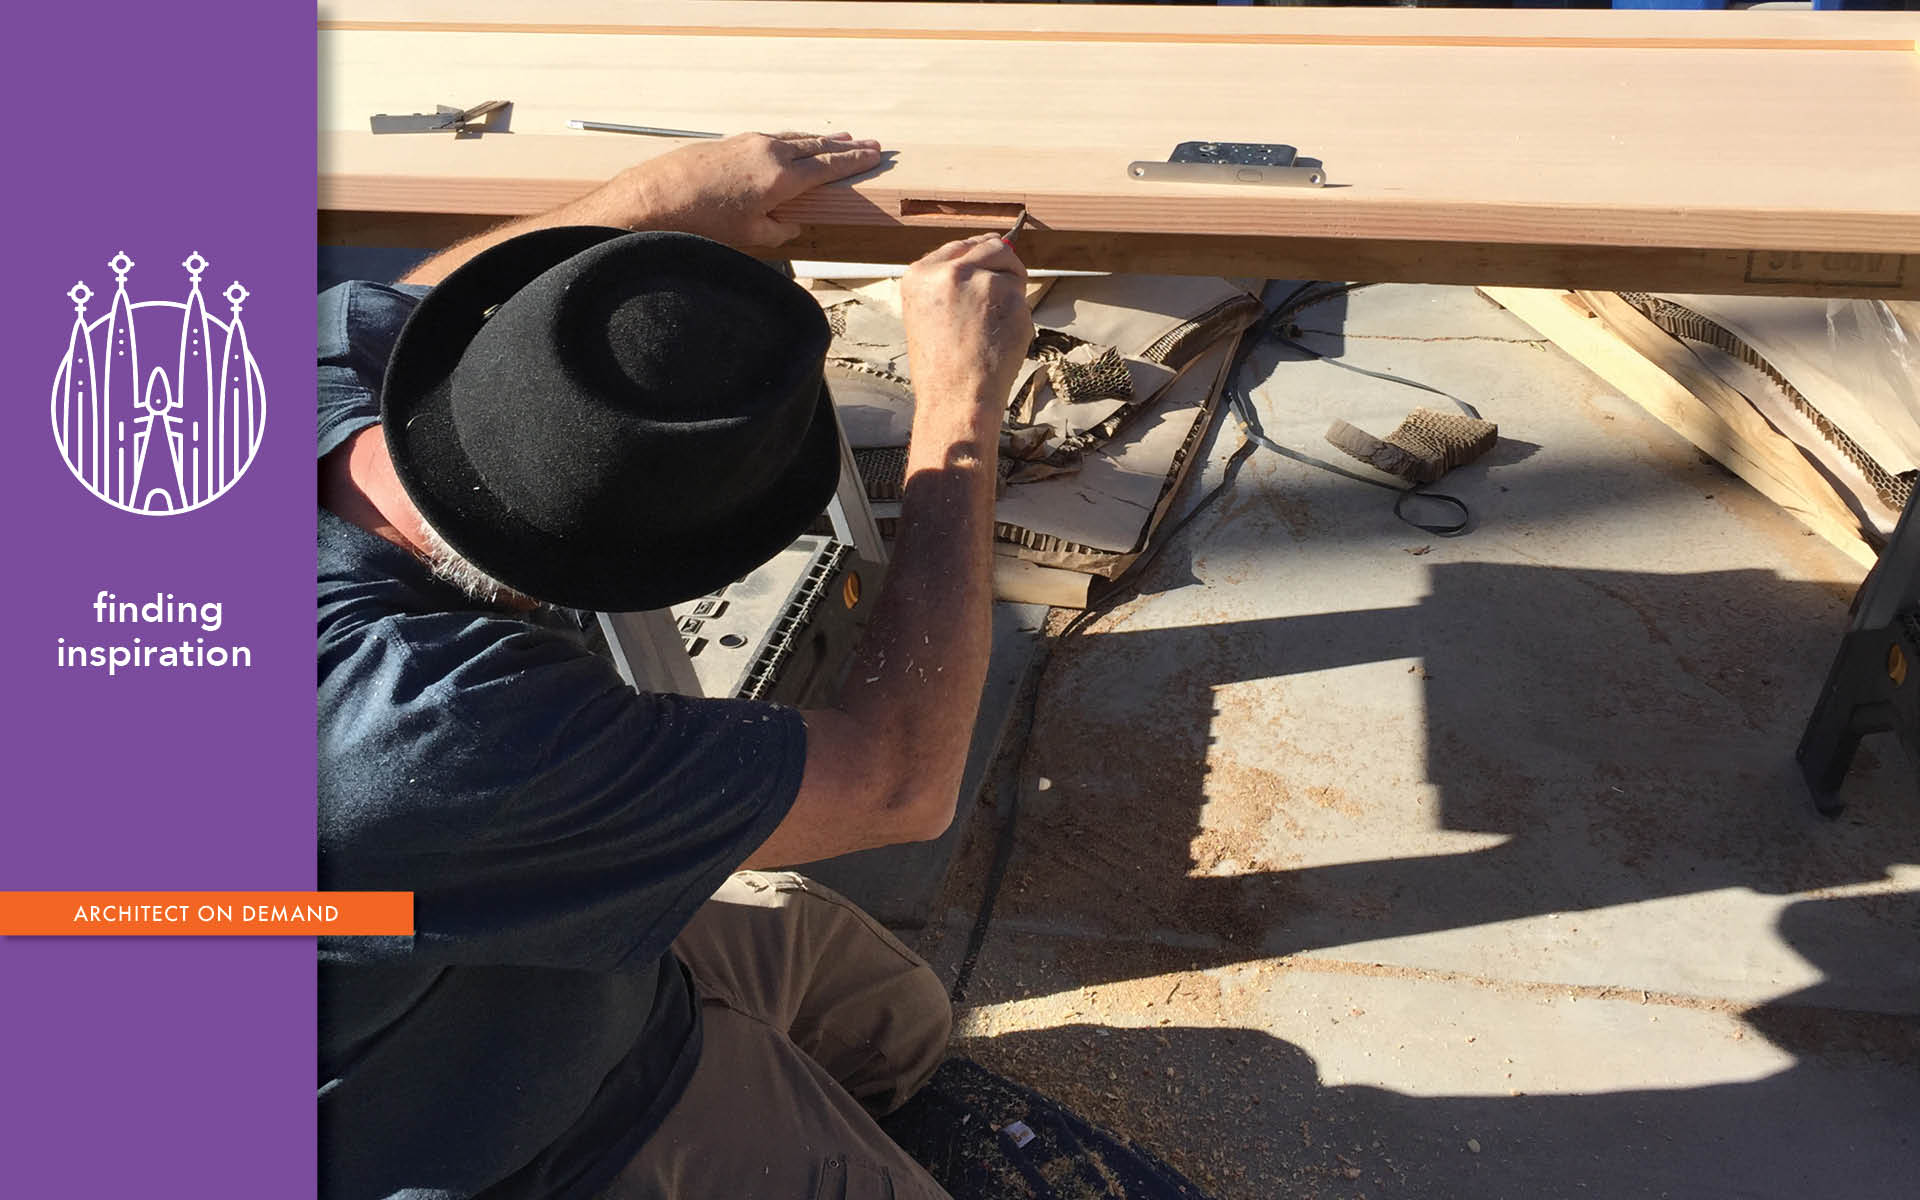 Tommy Hilton, artist, carpenter, architect on demand, advice without strings